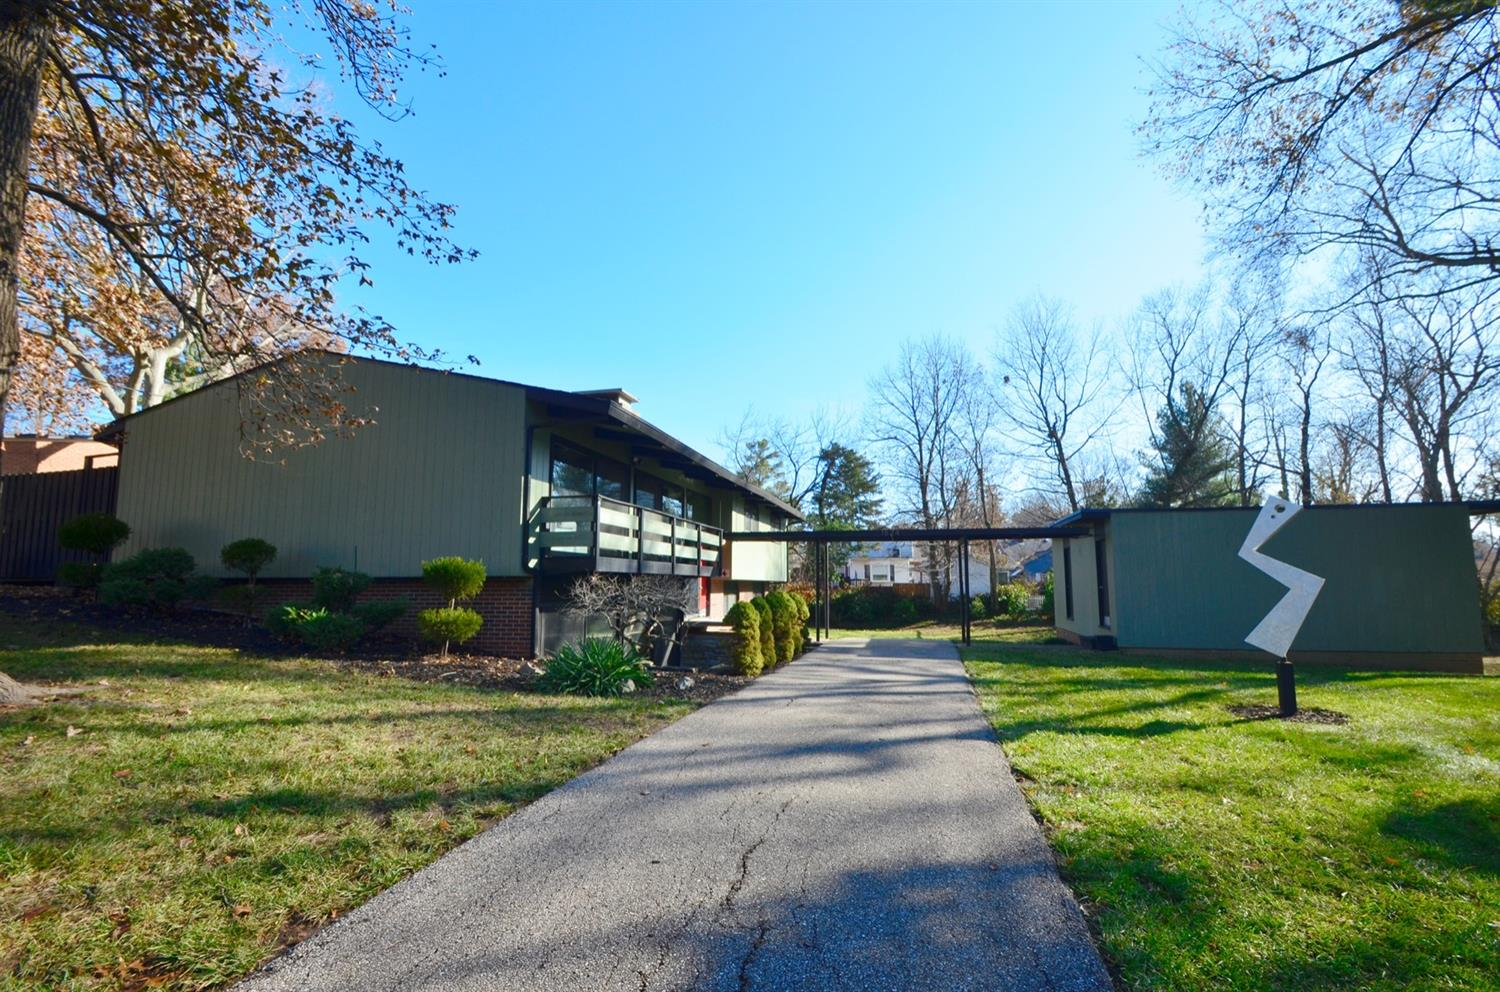 Street View.  Rudy Hermes designed and built 10 of the 12 midcentury modern homes on this cul-de-sac.